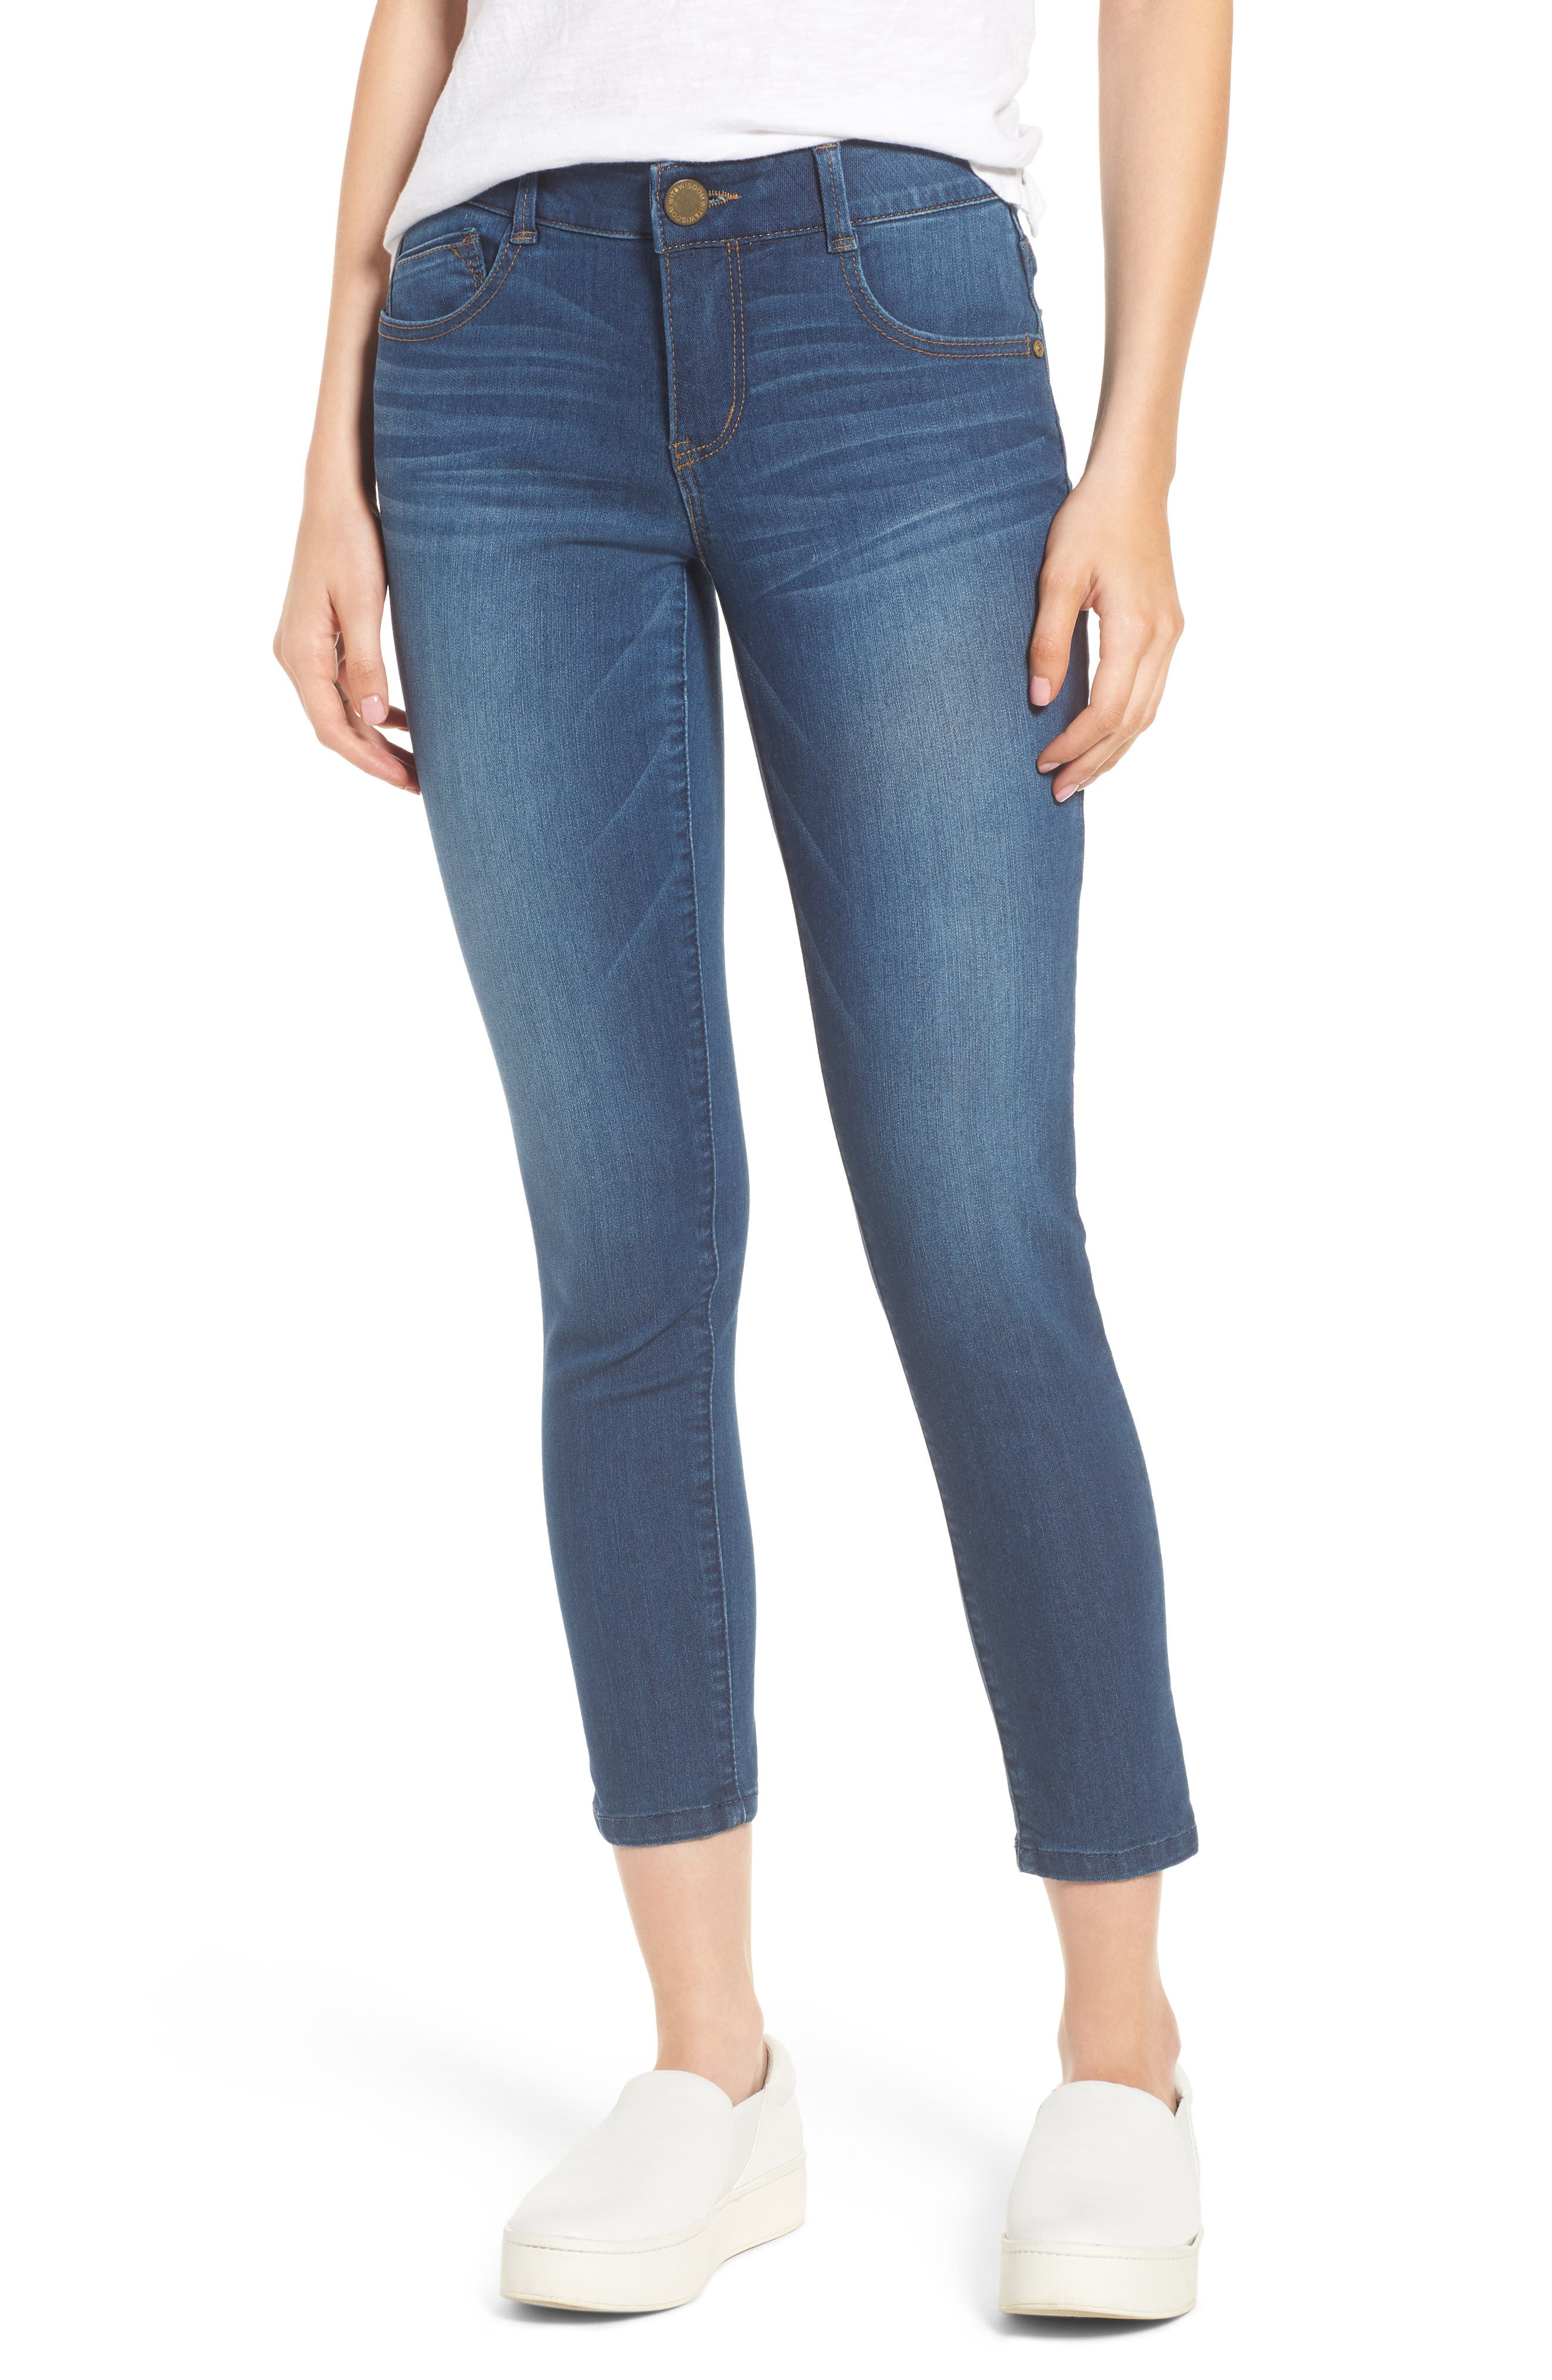 Wit & Wisdom Ab-solution Ankle Skimmer Jeans (Nordstrom Exclusive)